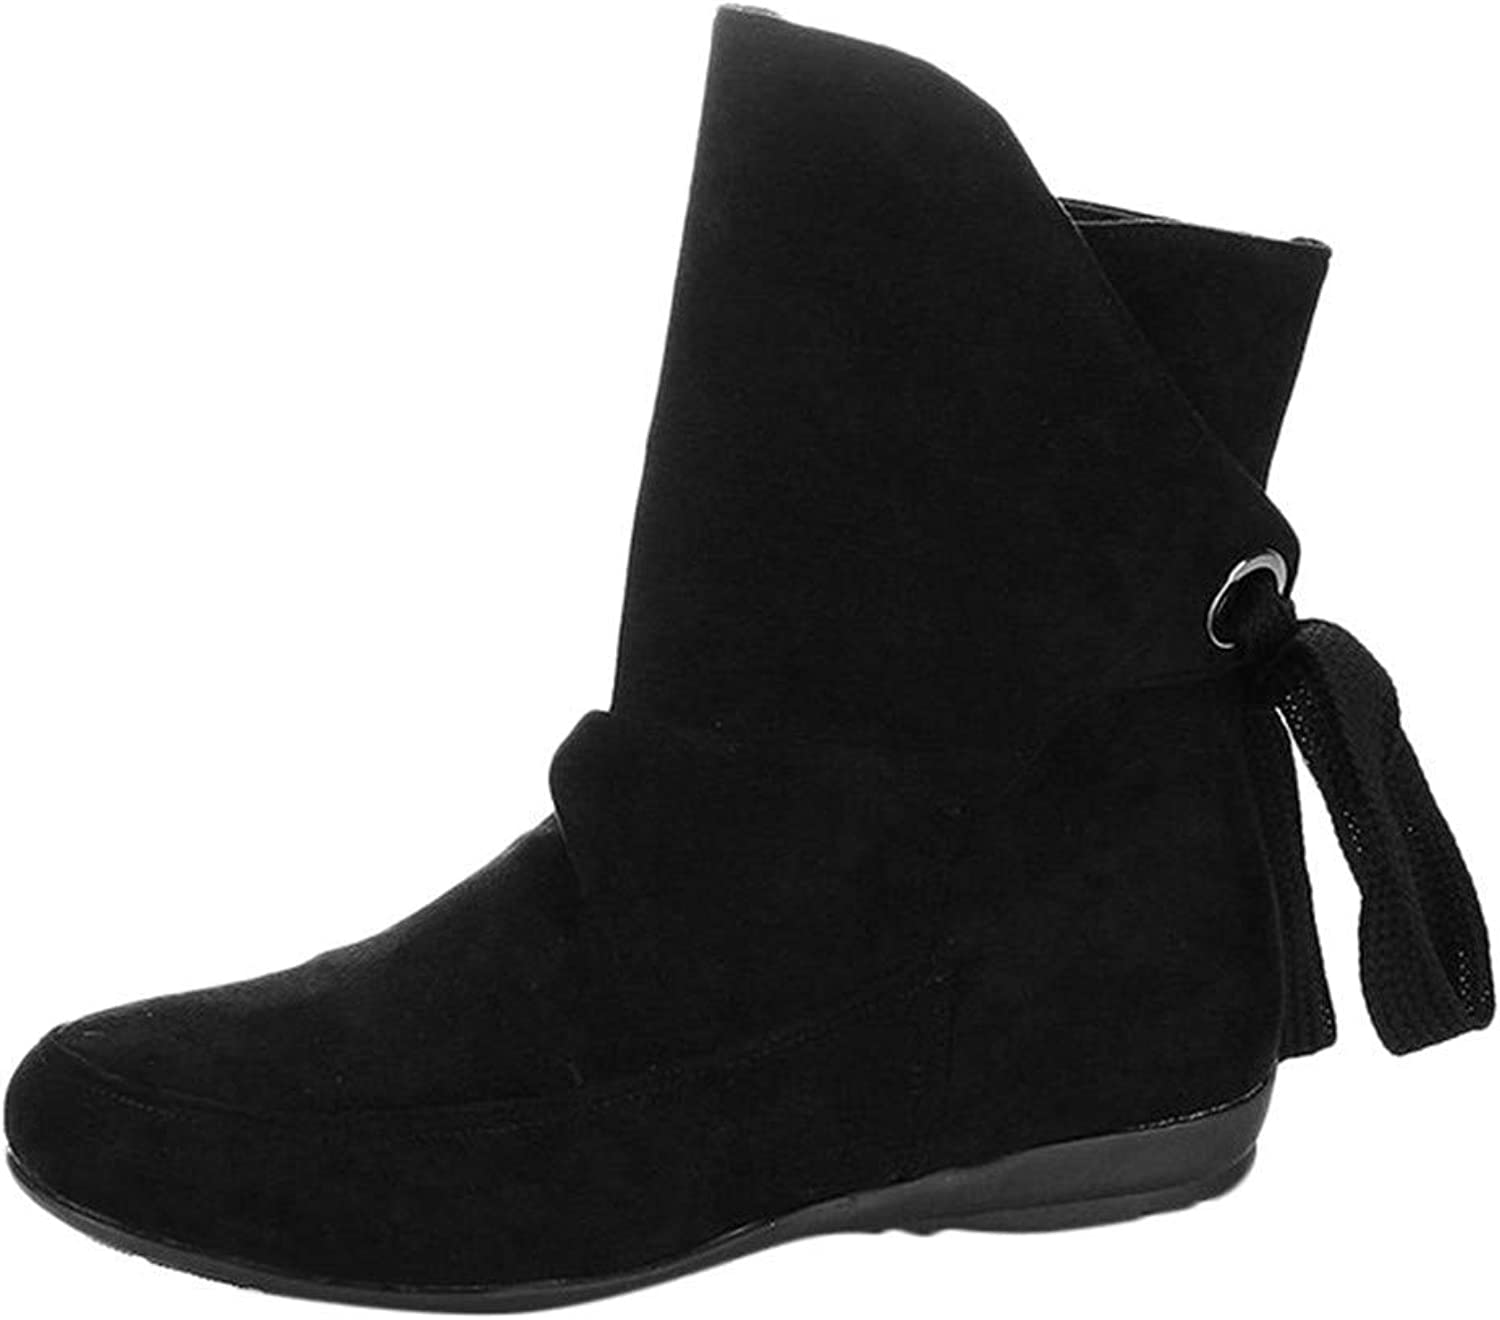 JaHGDU Women's Lace Up shoes Buckle Roman Knuckle Short Boots Martin Boots Fashion Cosy Wild Casual Quality Super Elegant Leisure for Womens